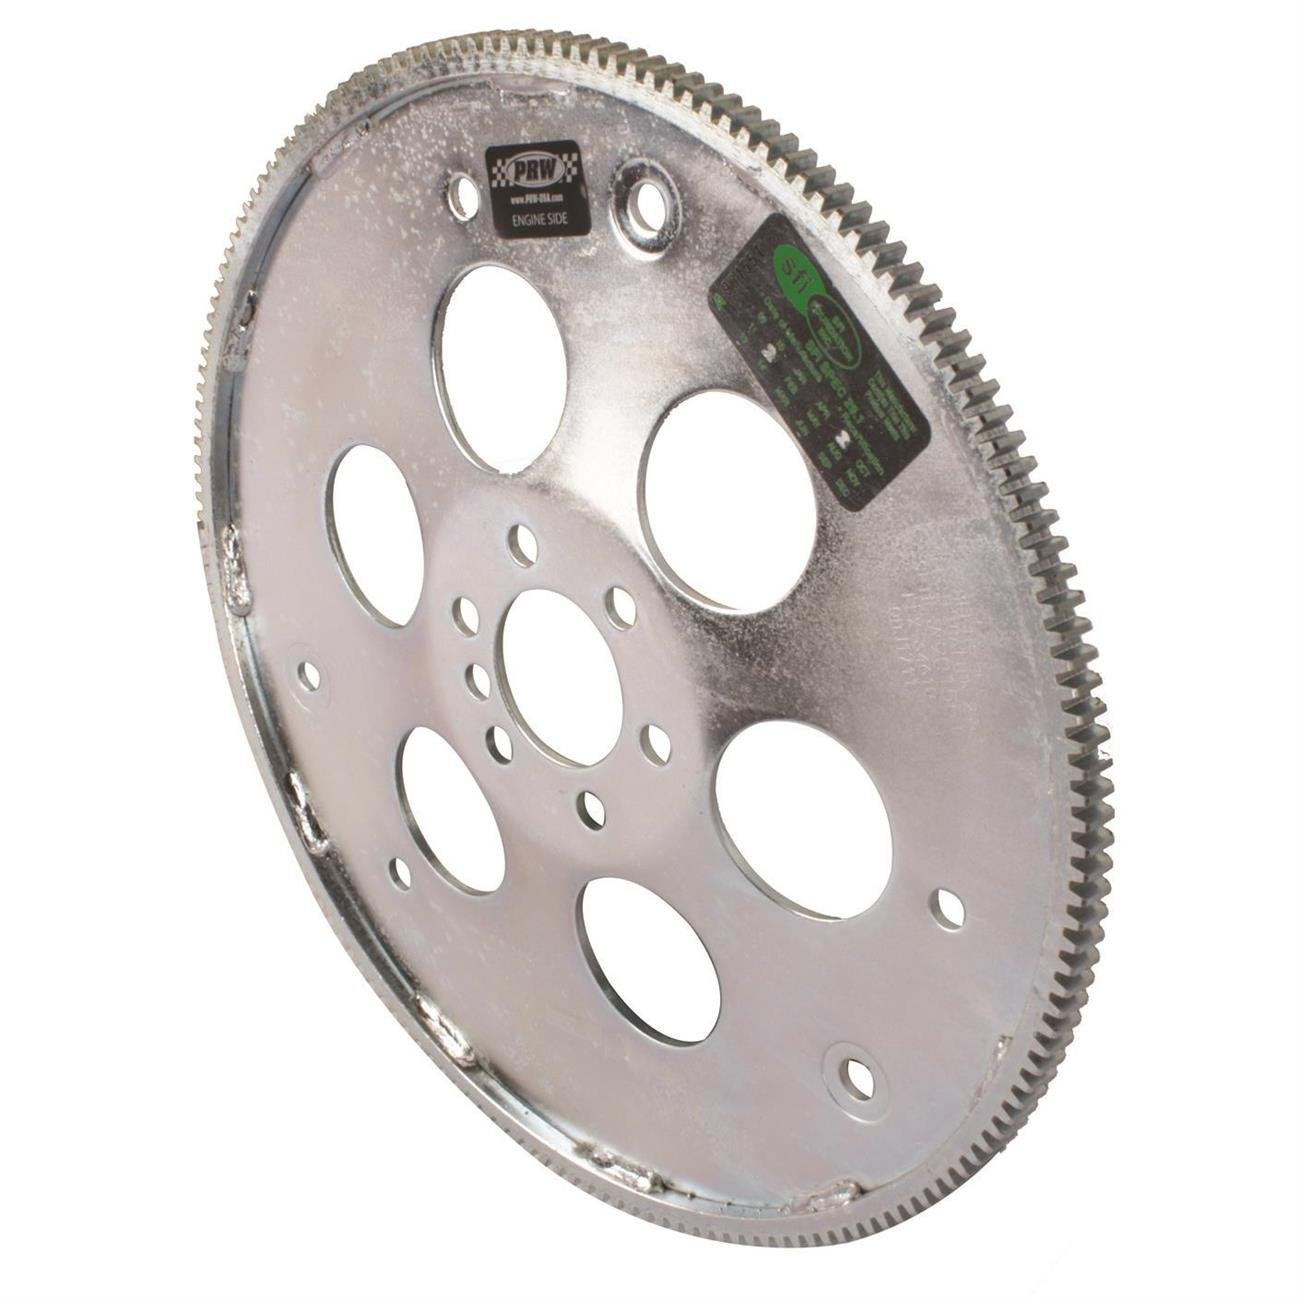 LS1/LS2/LS6/5.3/6.0 to TH350/TH400/700R4/4L60 Adapter Flexplate by Speedway Motors